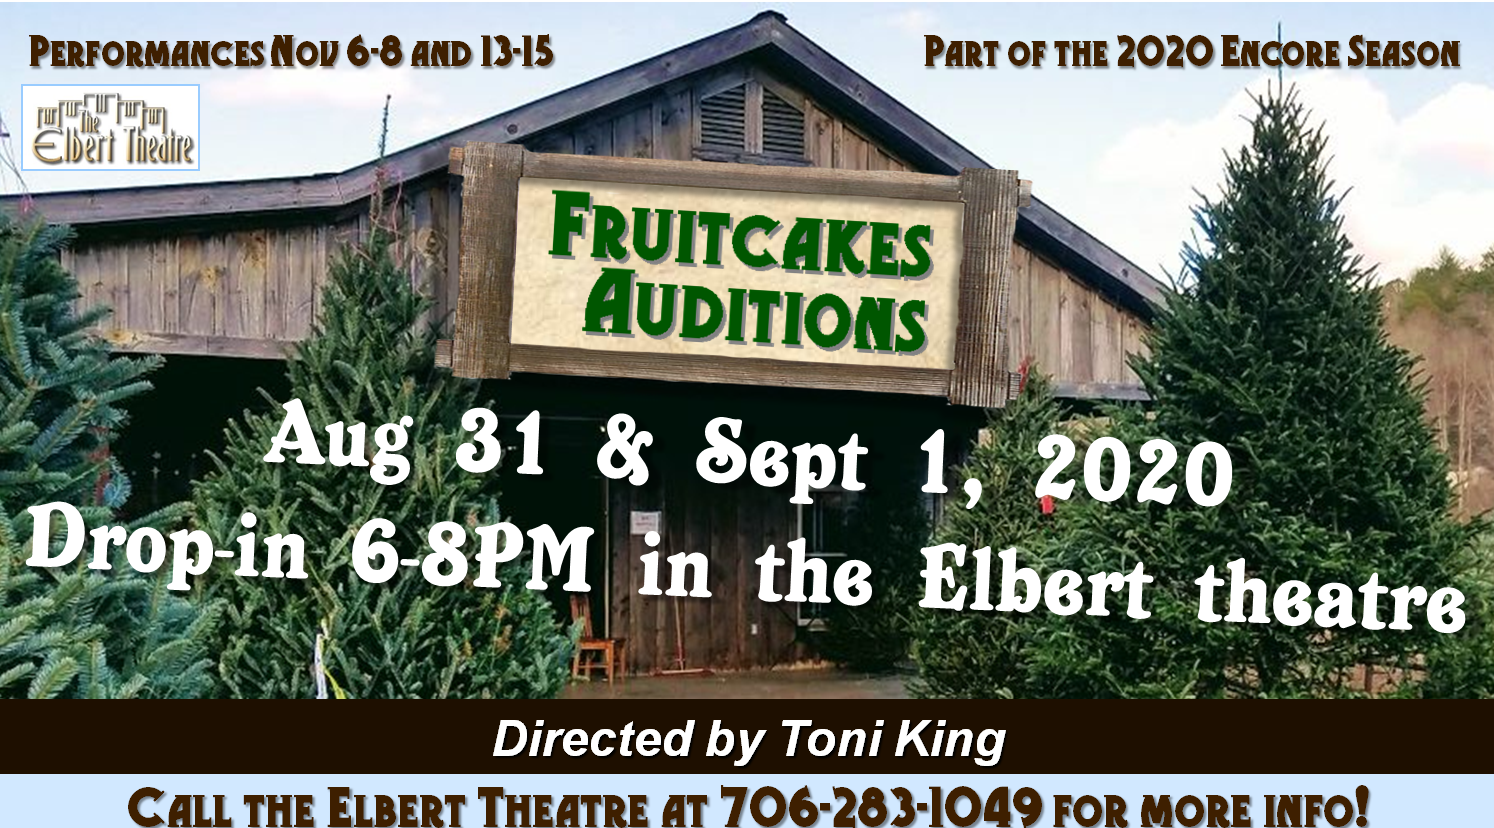 Fruitcakes Auditions